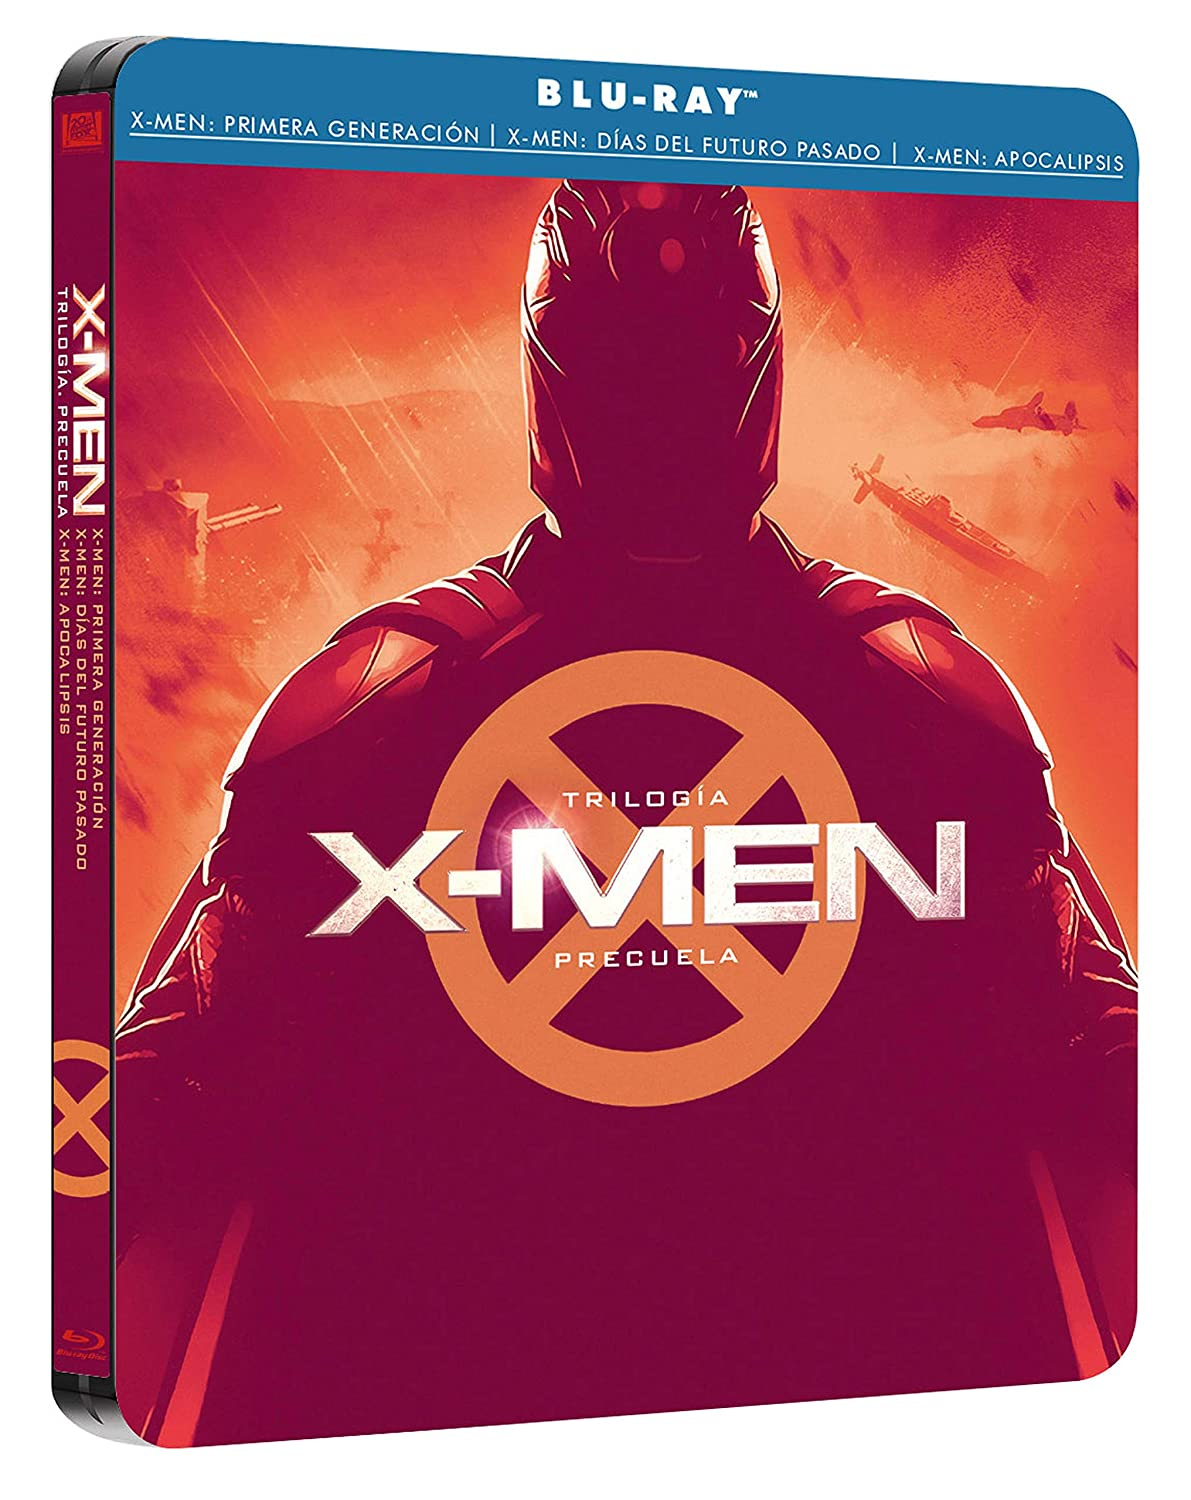 Pack X-Men Trilogía Precuela Black Mtl Ed Blu-Ray Blu-ray: Amazon.es: Omar Sy, Alexandra Shipp, Ellen Page, James Mcavoy, January Jones, Jennifer Lawrence, Kevin Bacon, Lana Condor, Lucas Till, Michael Fassbender, Olivia Munn,